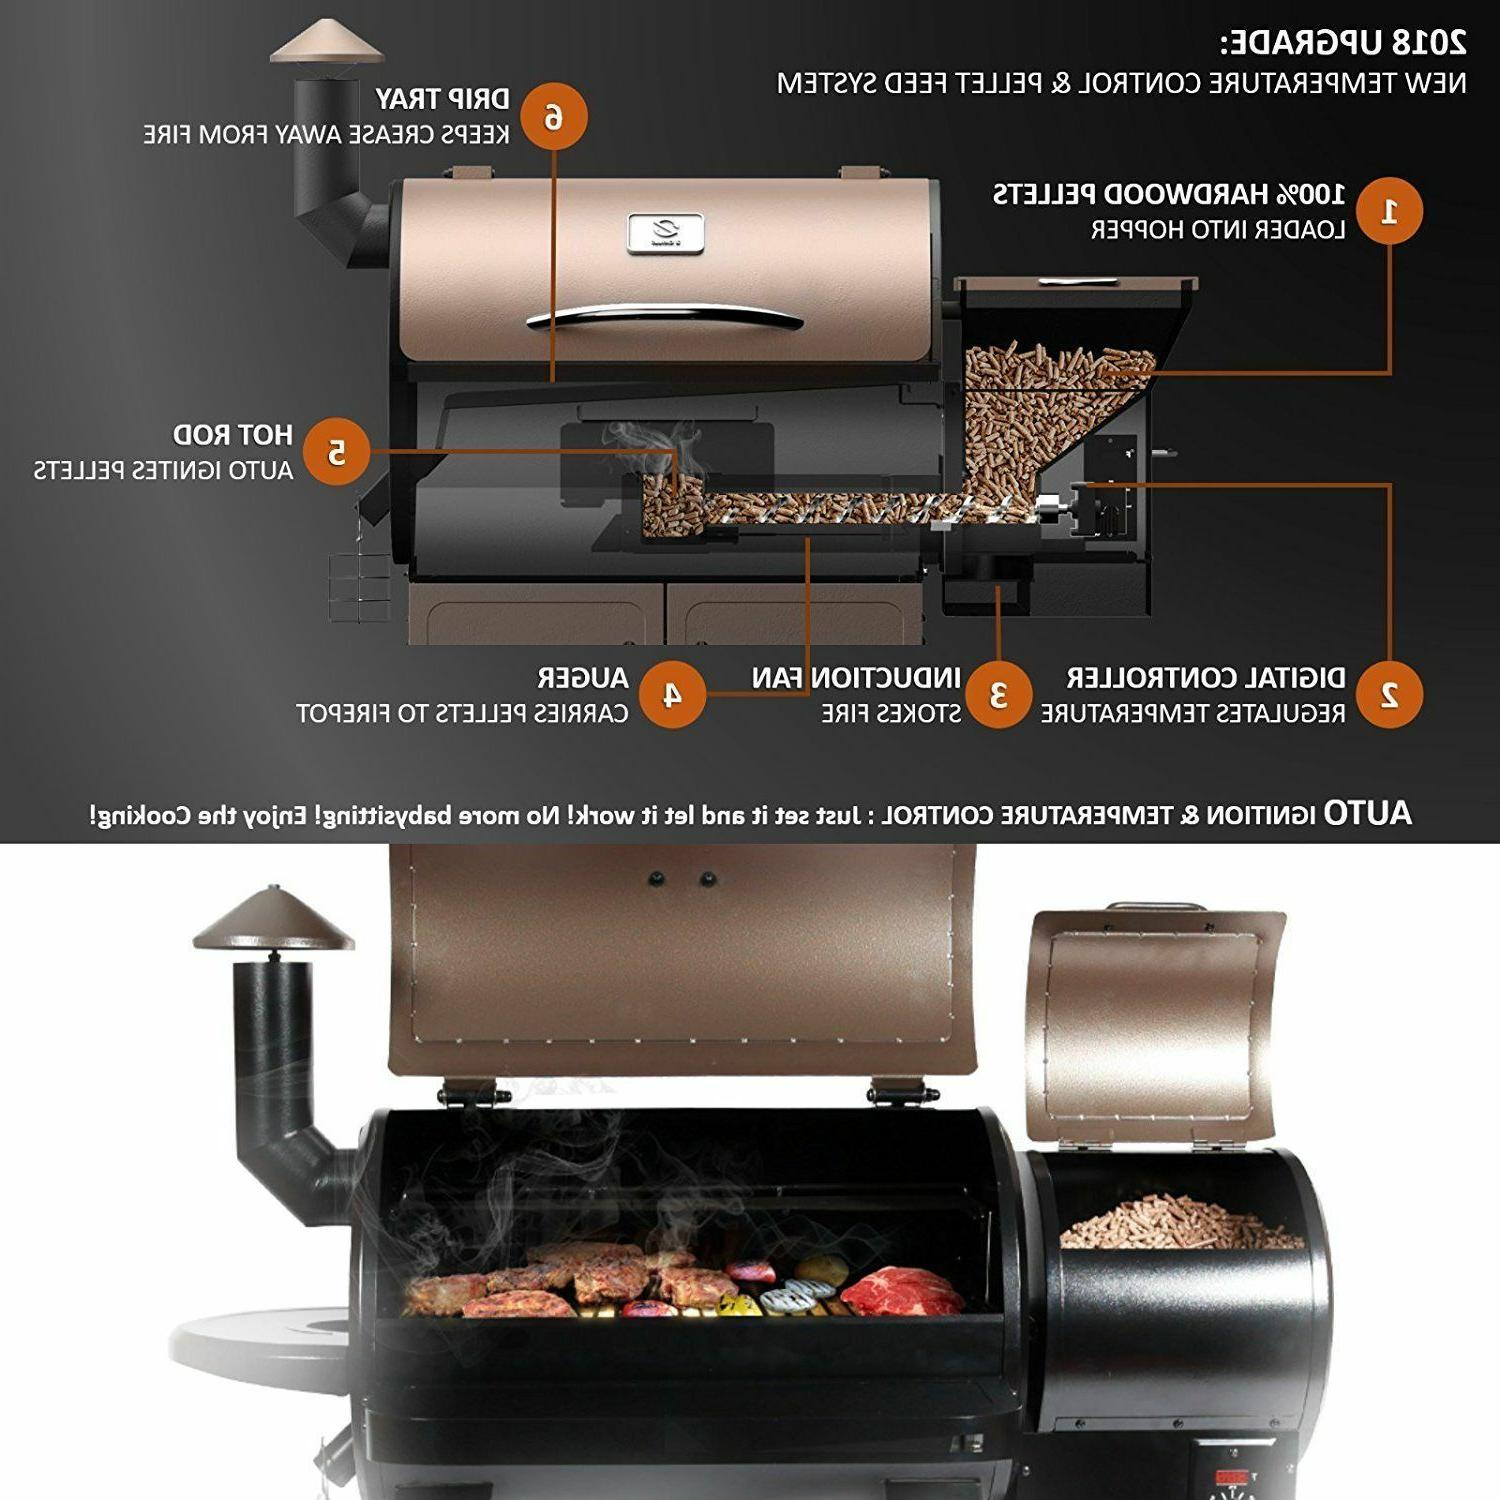 Z Upgrade Wood Pellet Grill for Cooking